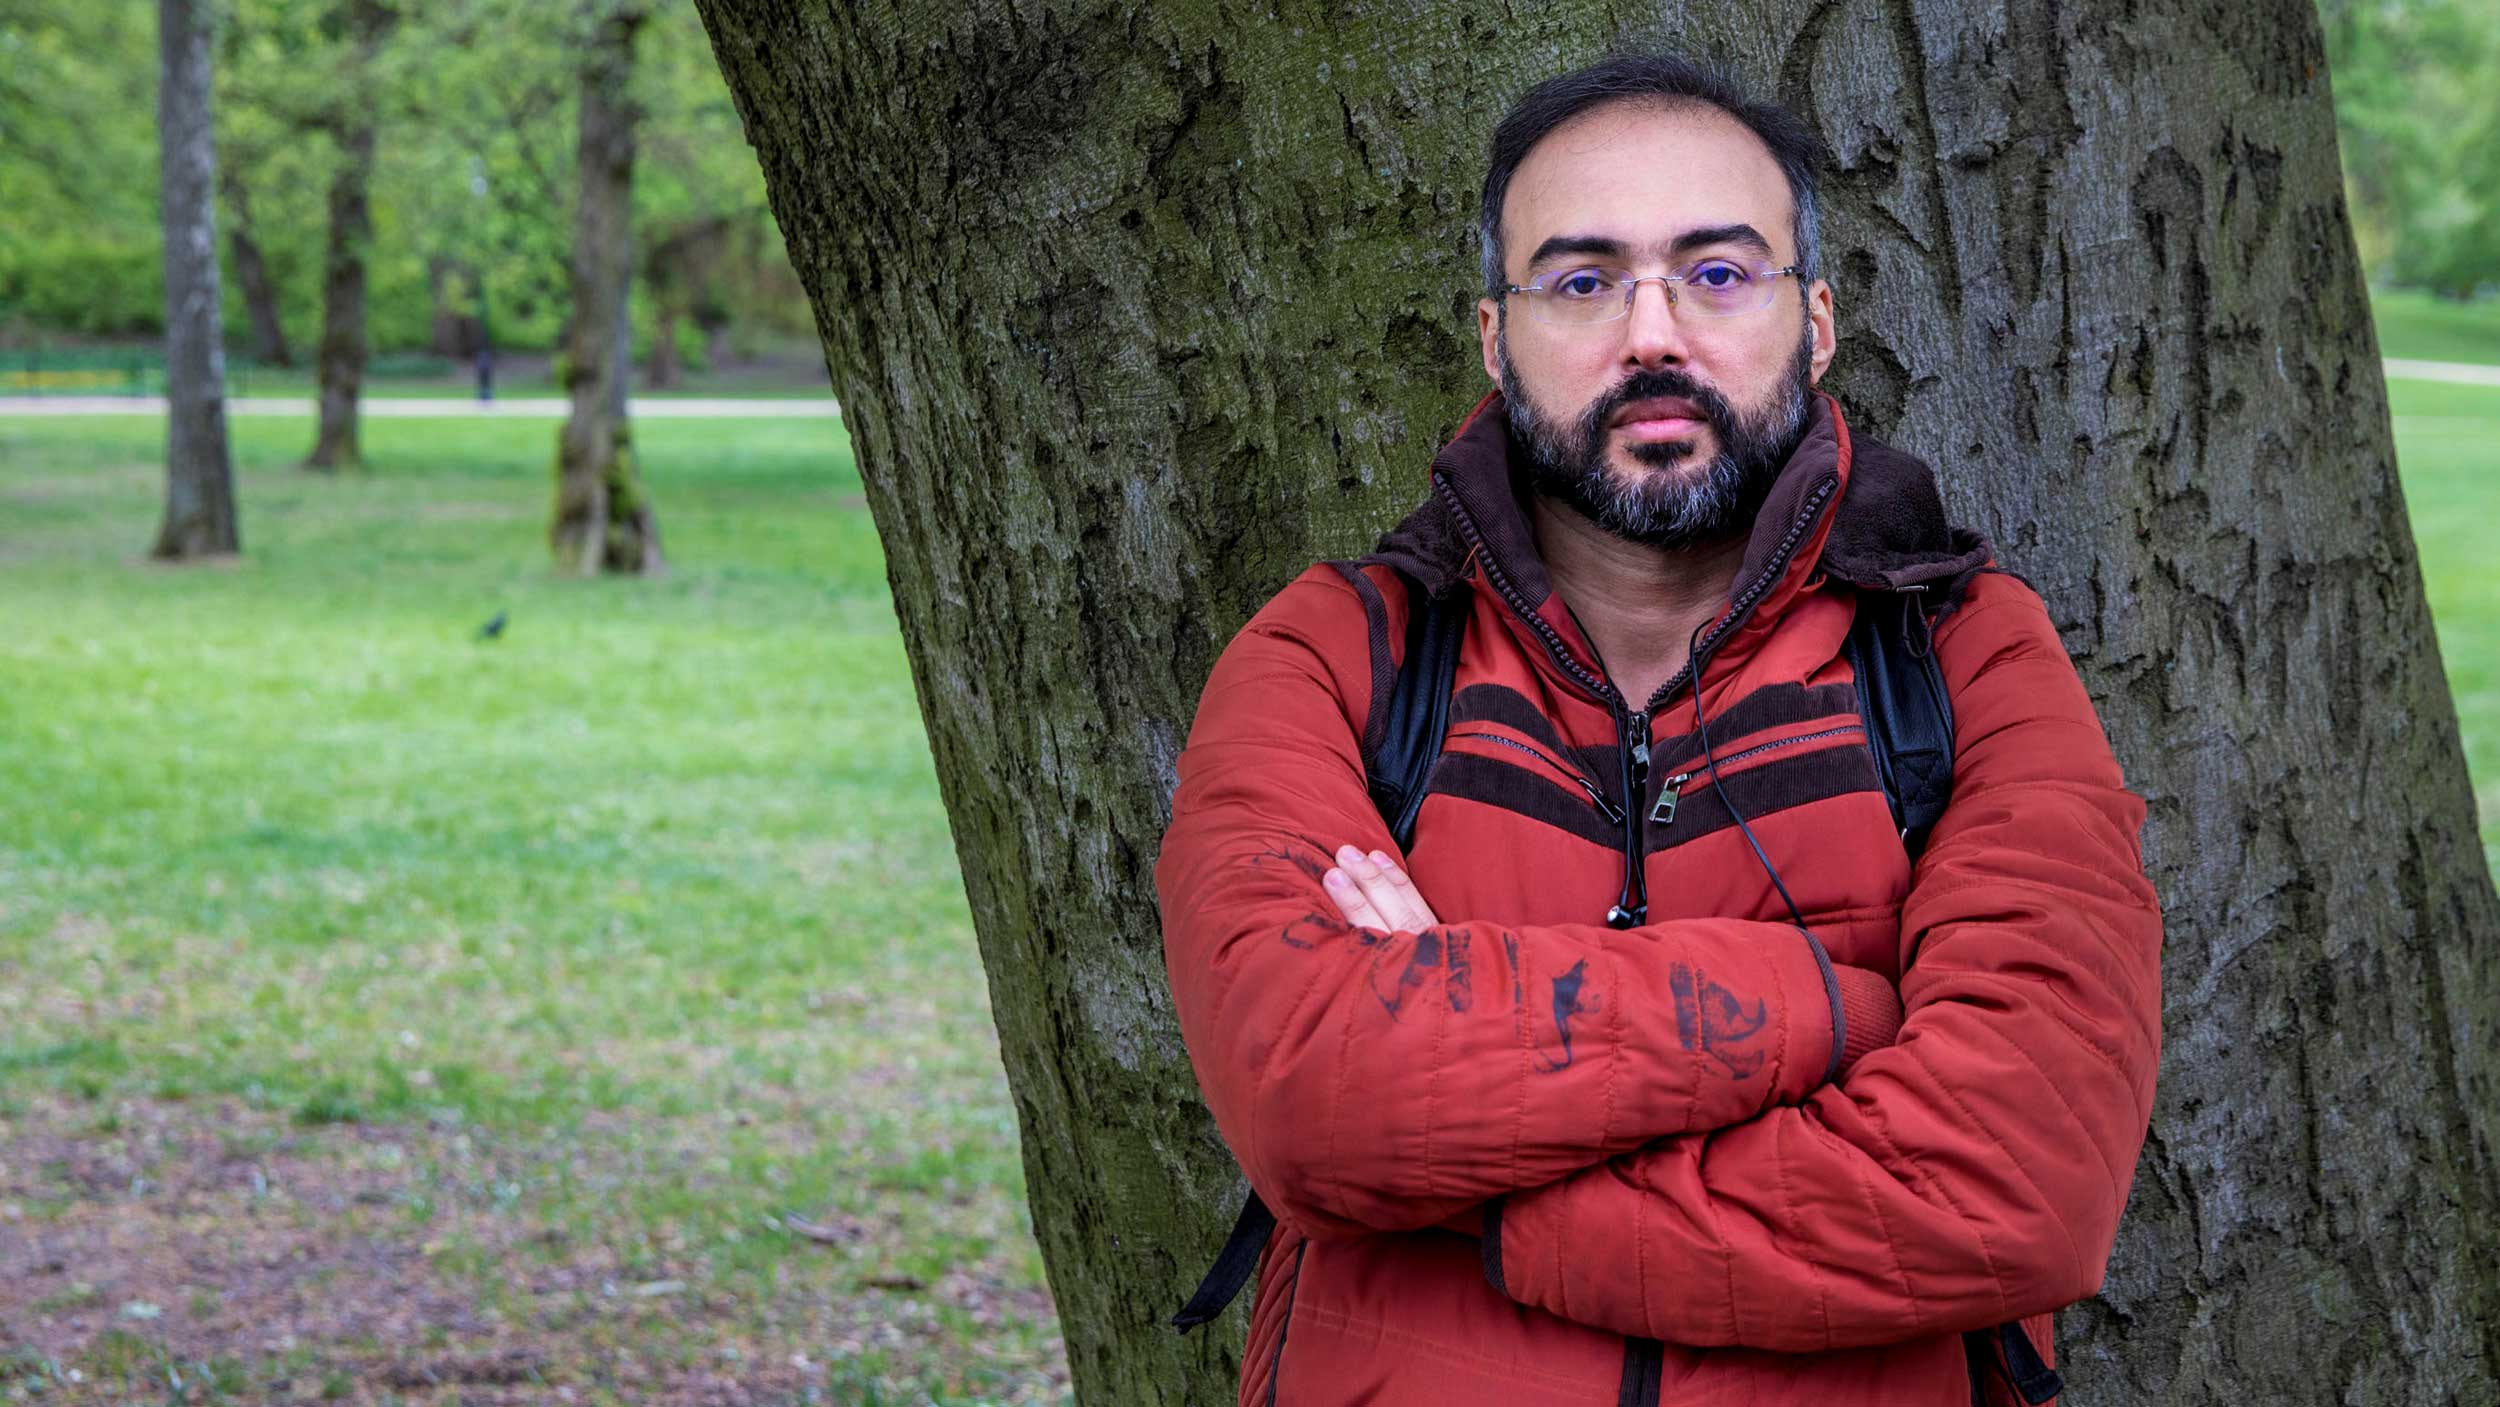 A man poses for a photo against a tree, wearing a red jacket